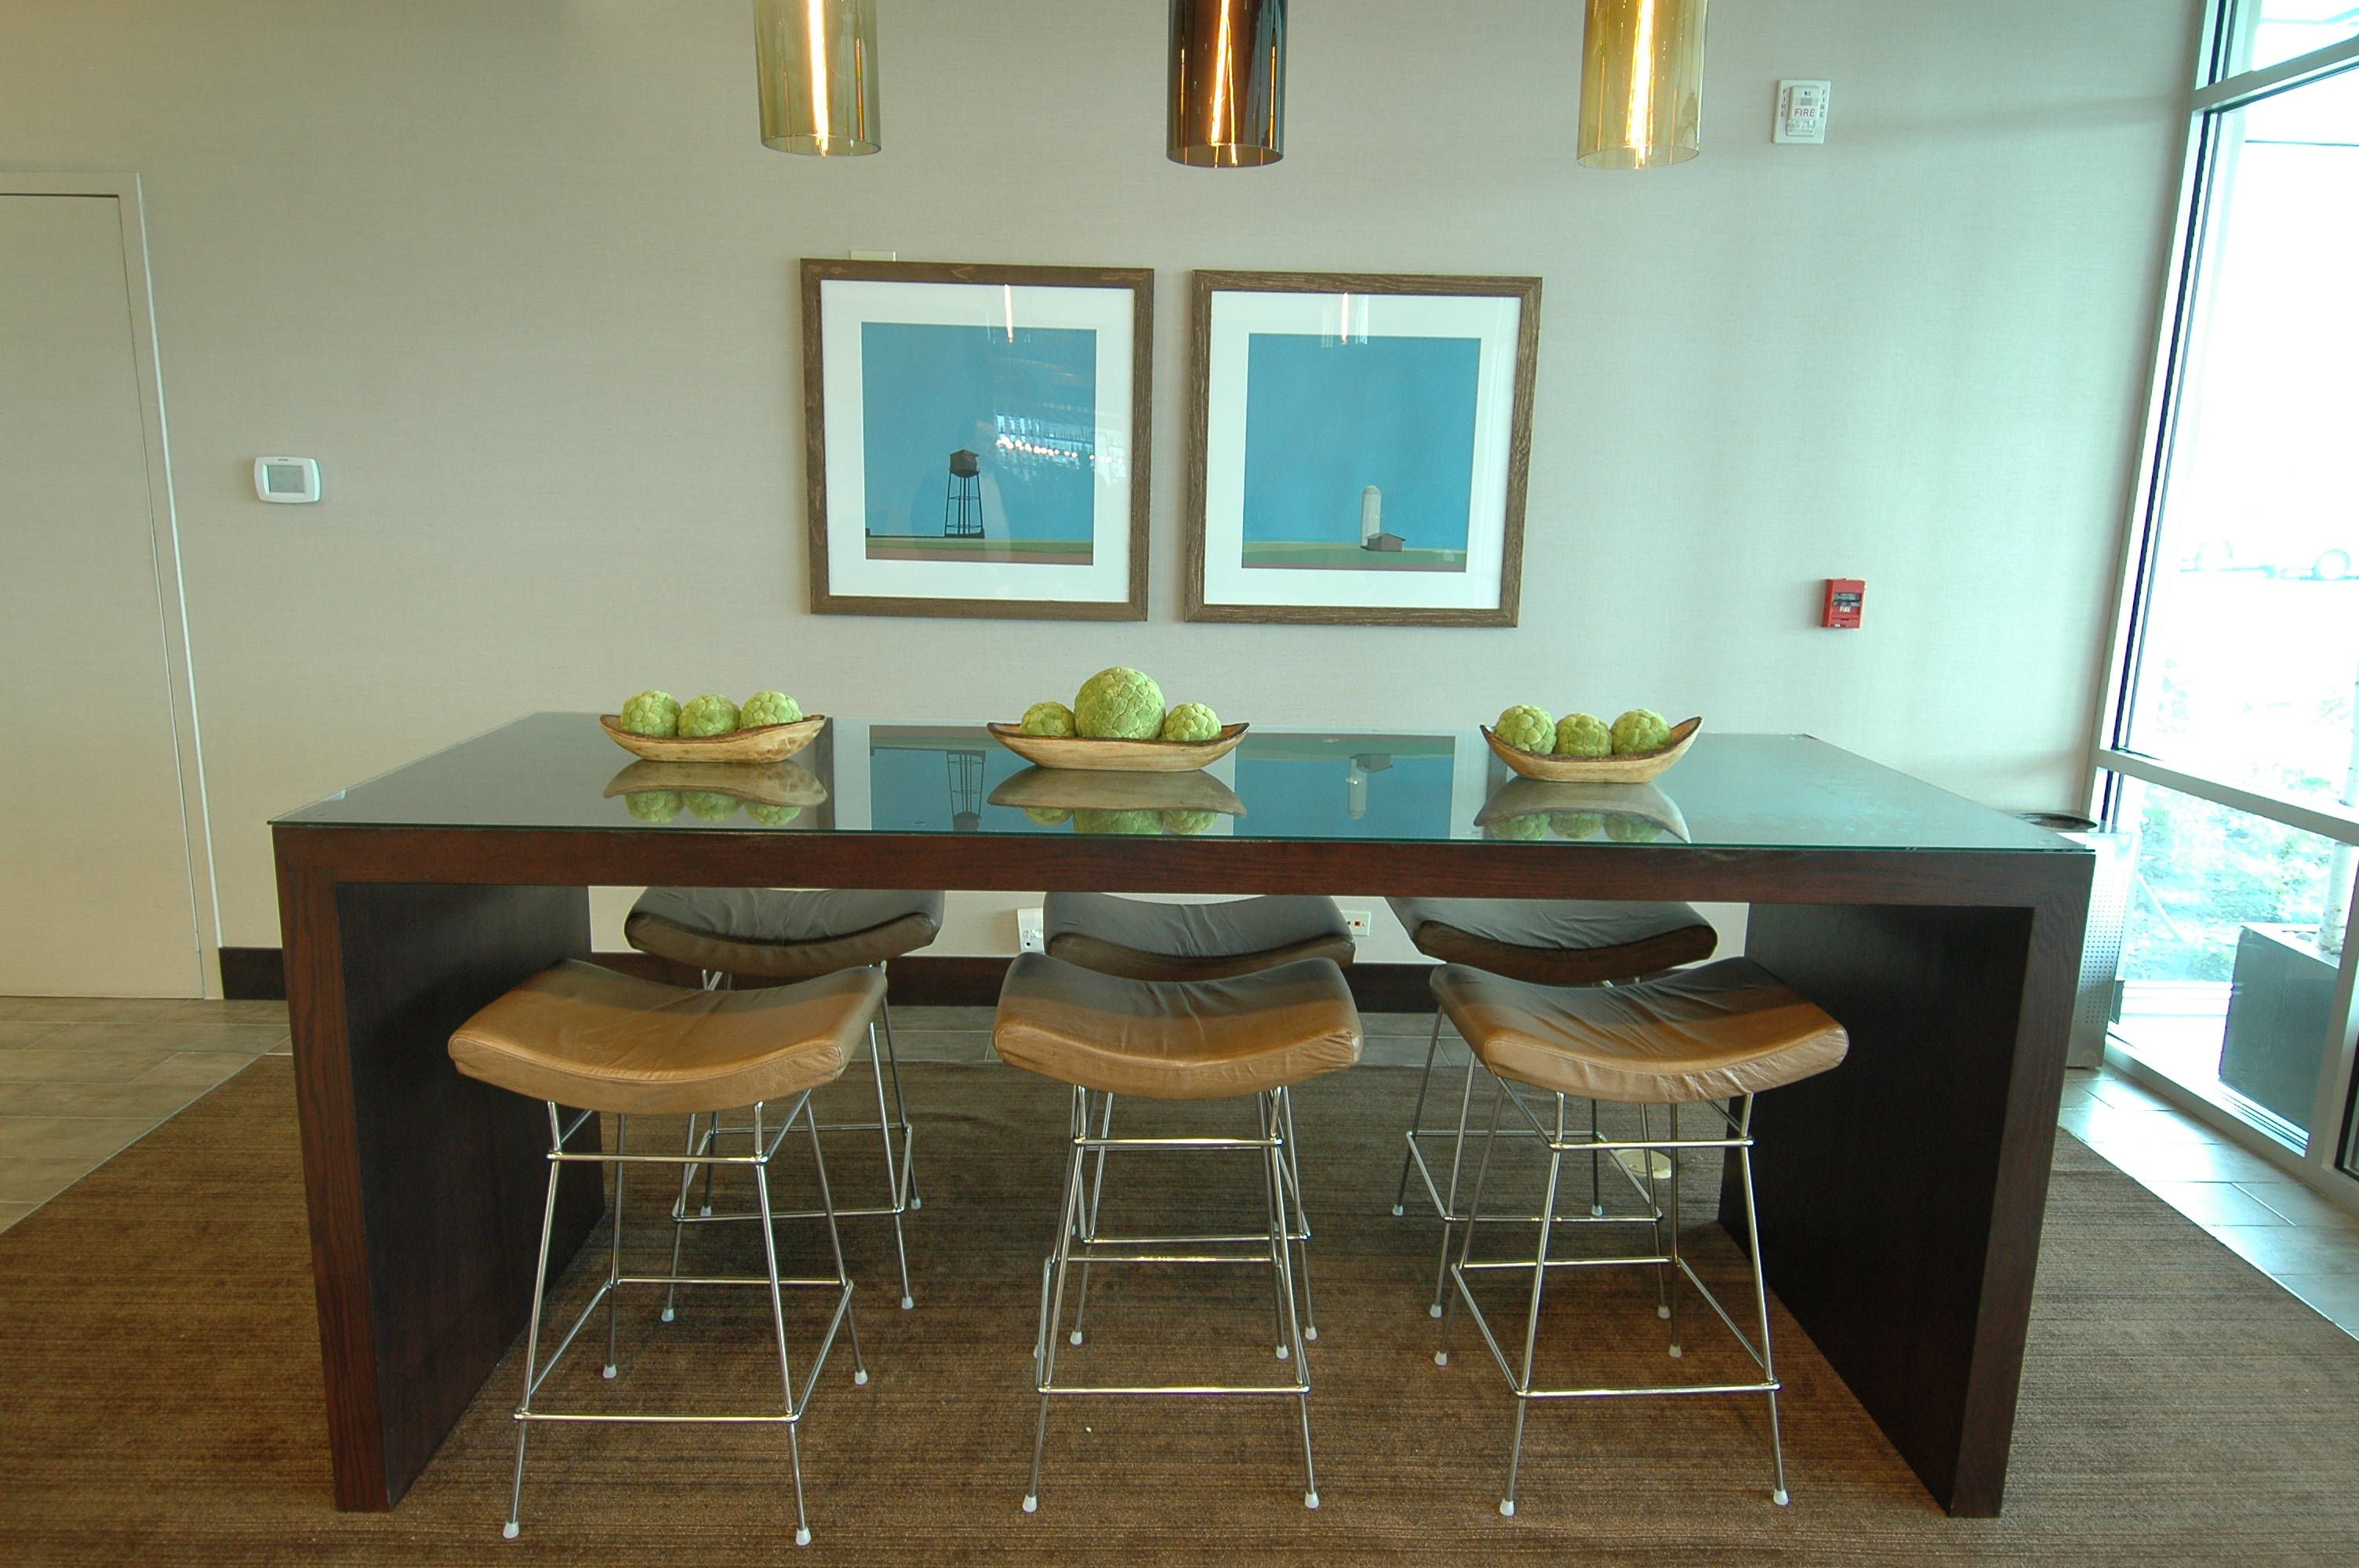 Clear Glass Table Top To Protect Furniture From Scratches Or Just